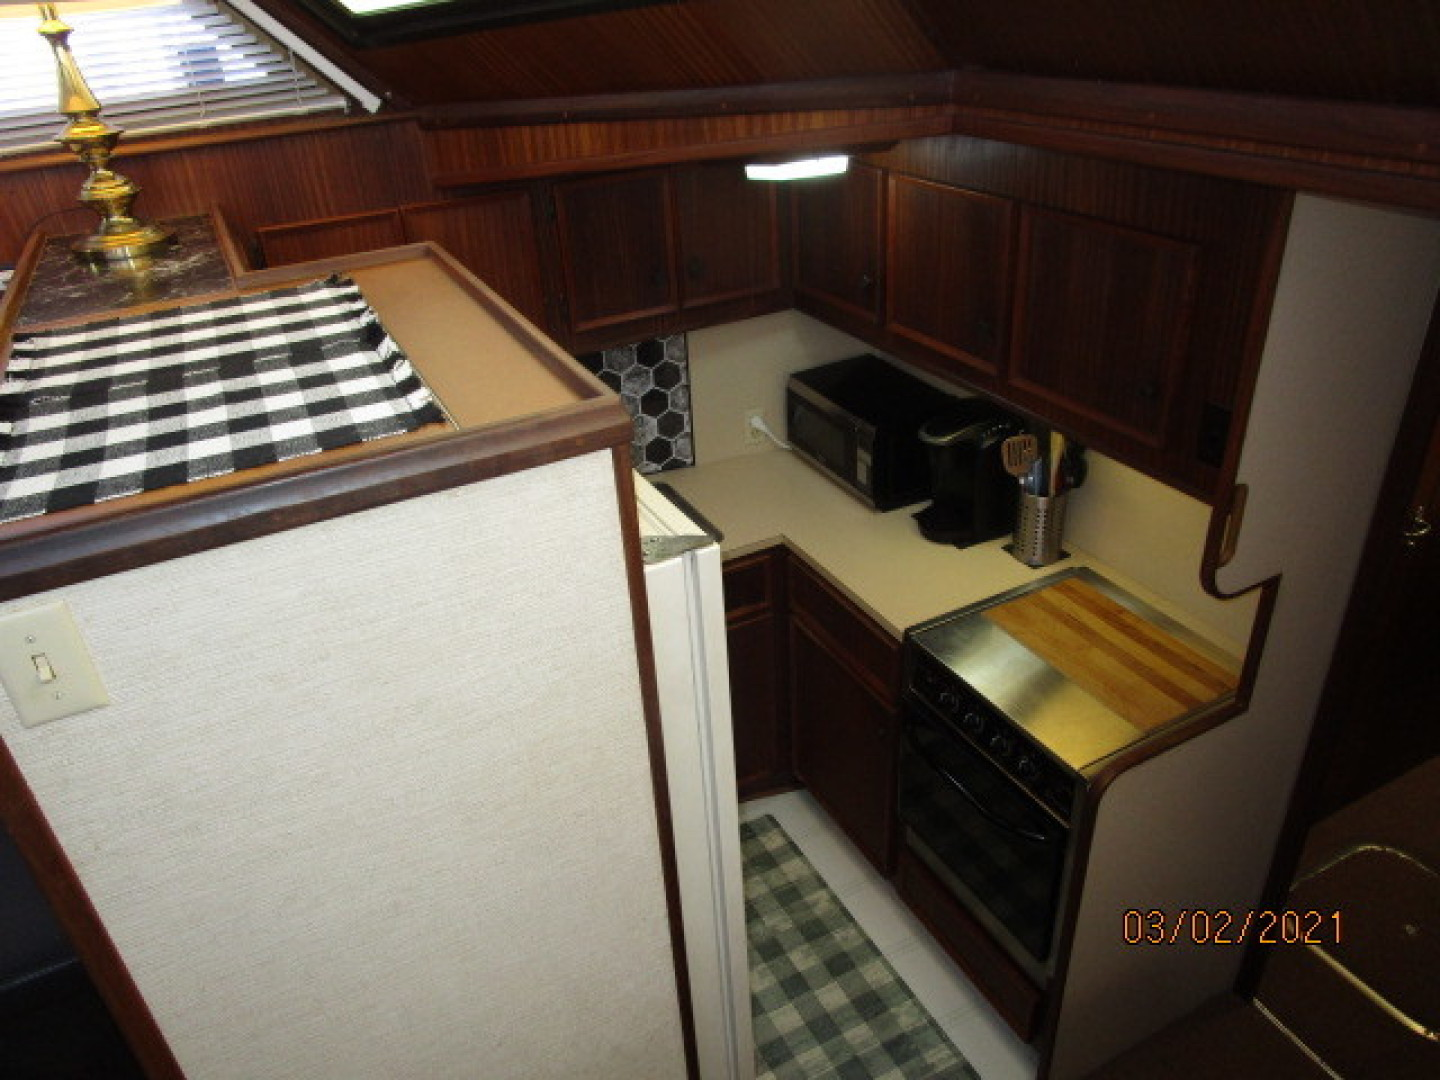 Hatteras-48 1981-Partner Ship Carolina Beach-North Carolina-United States-48 Hatteras galley1-1629285 | Thumbnail